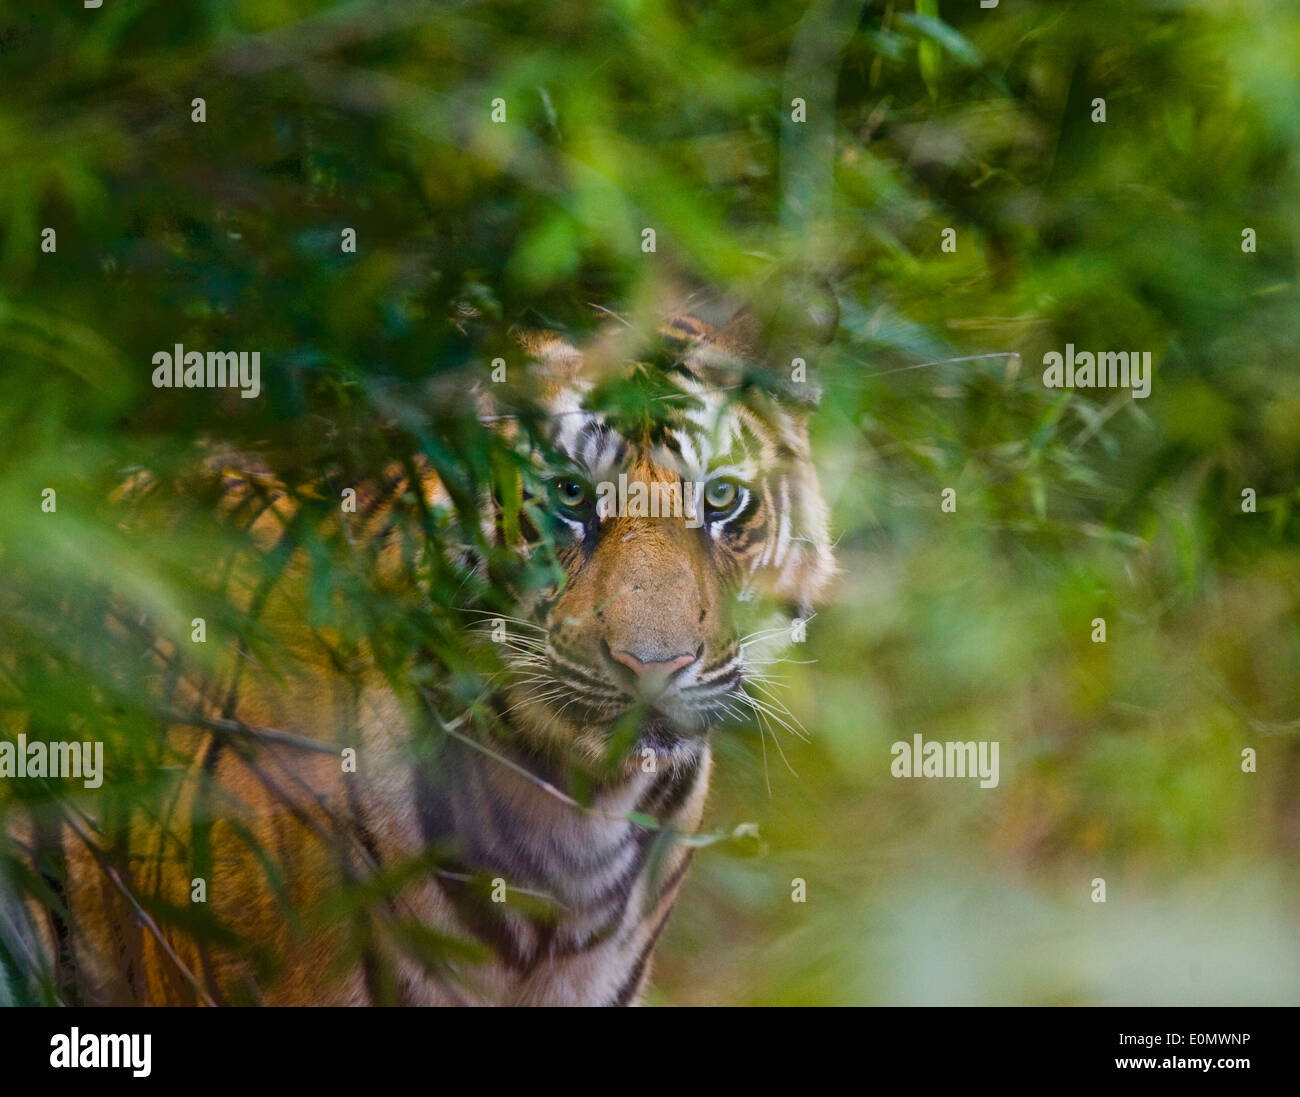 Indian tiger, Bandhavgarh National Park, India (Panthera tigris) - Stock Image